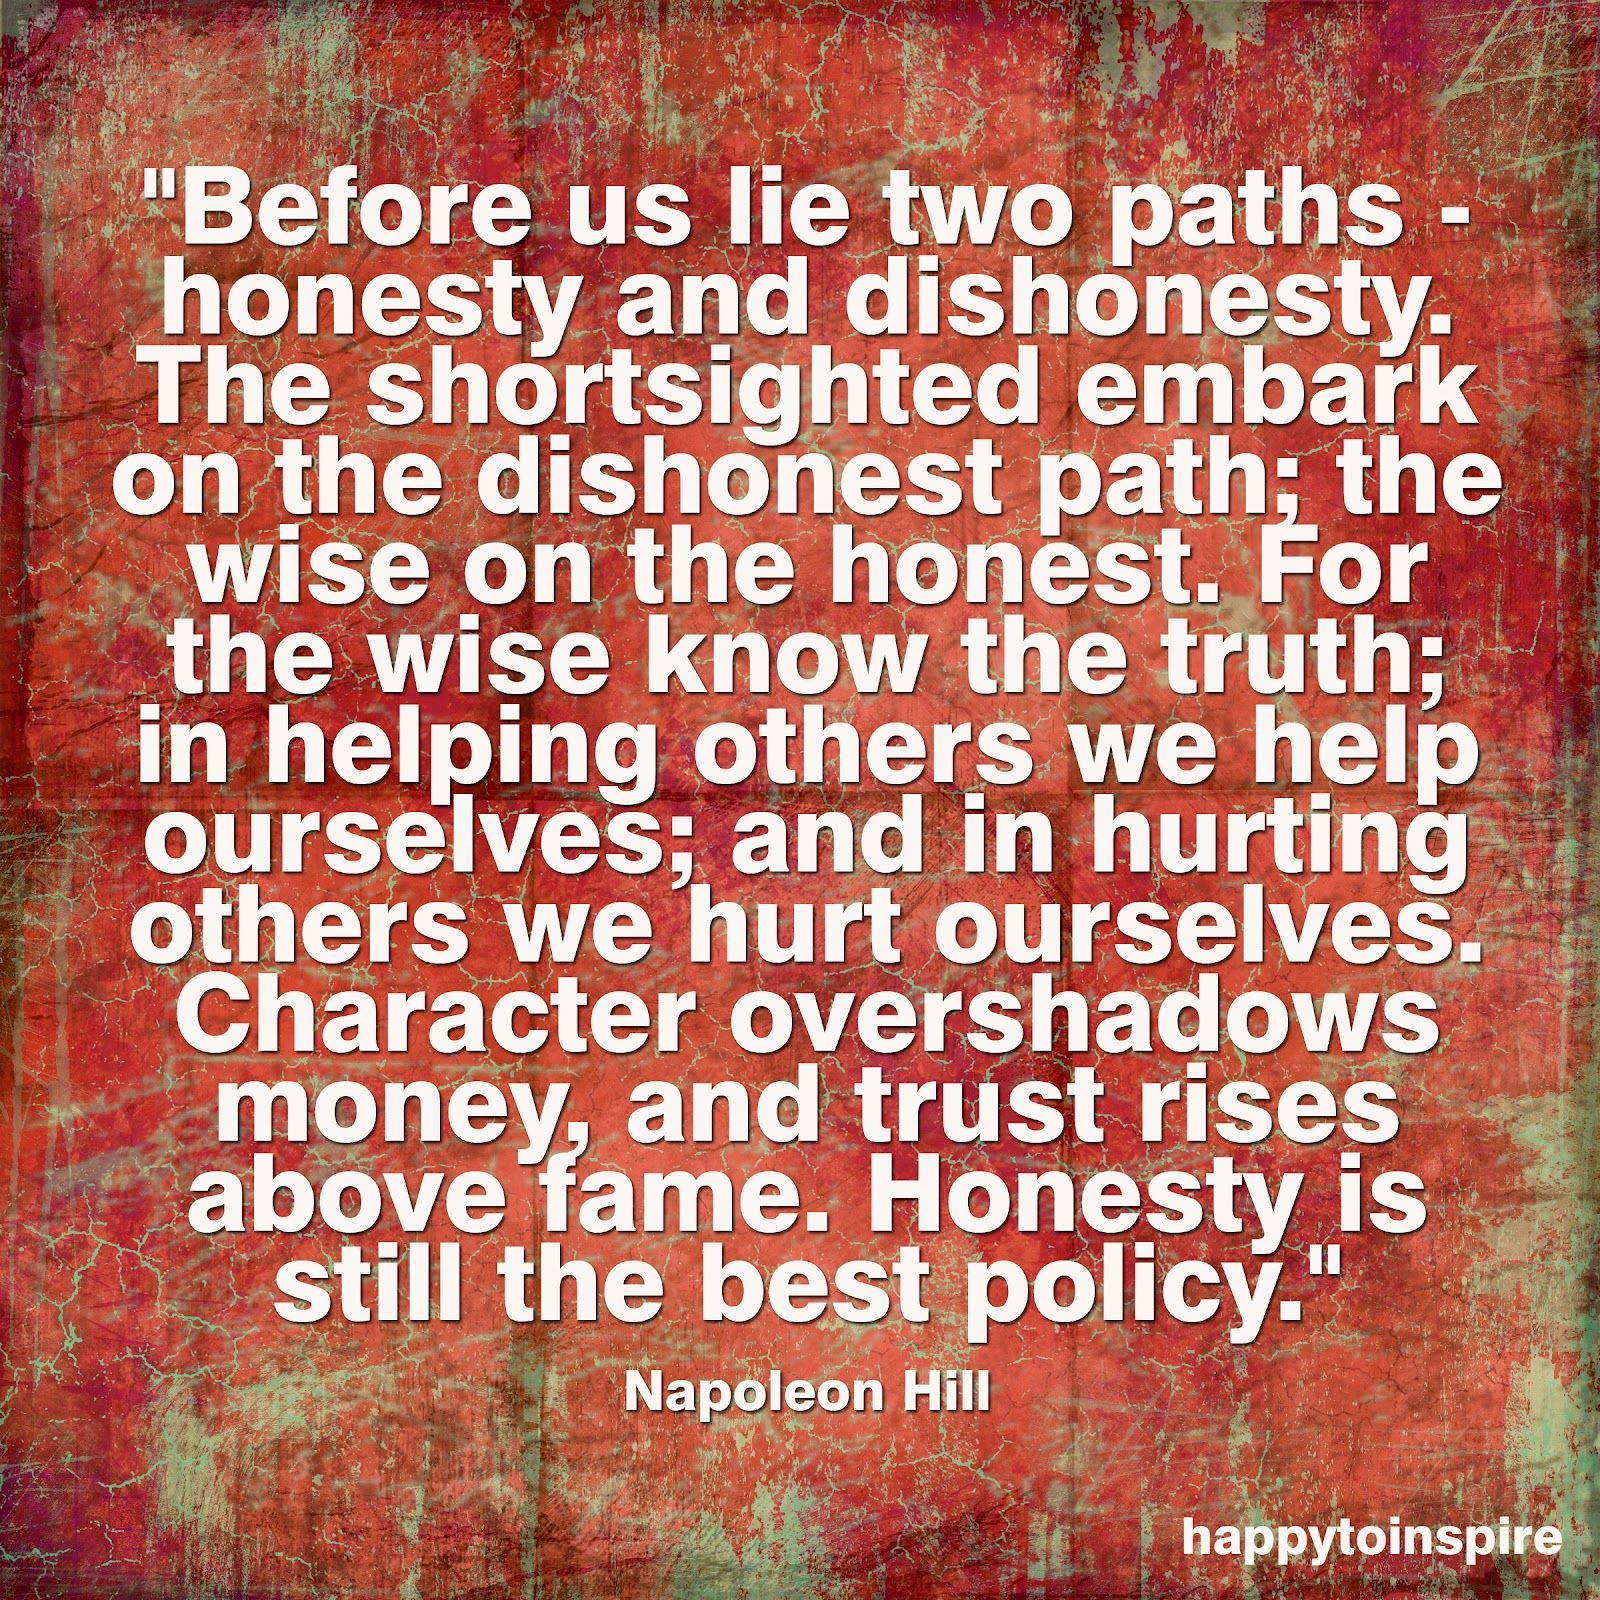 Quote Of The Day: Honesty Is Still The Best Policy